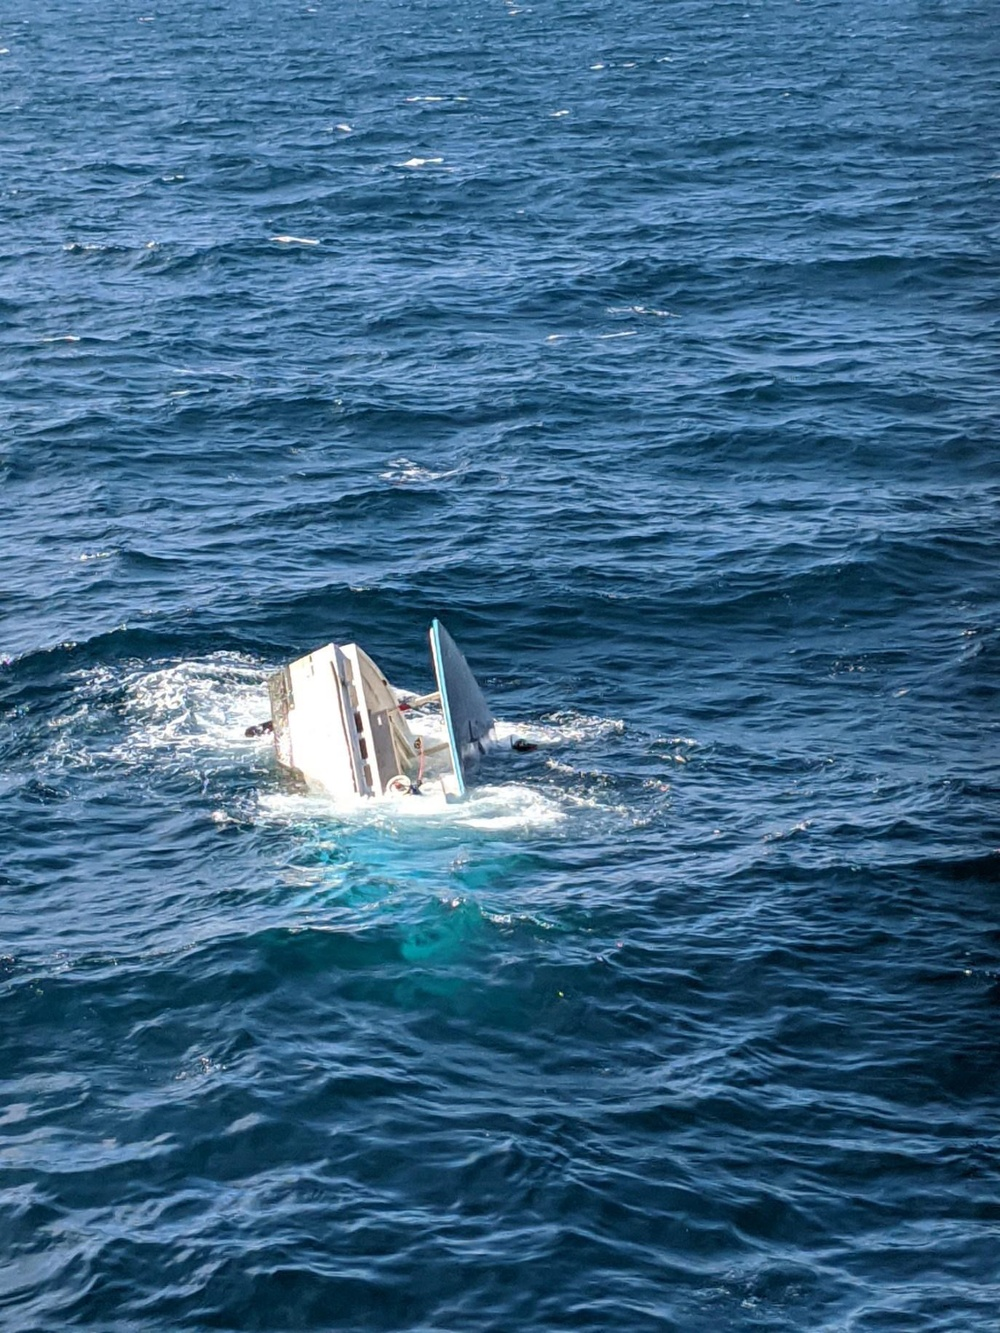 Coast Guard rescues man after commercial fishing boat capsizes